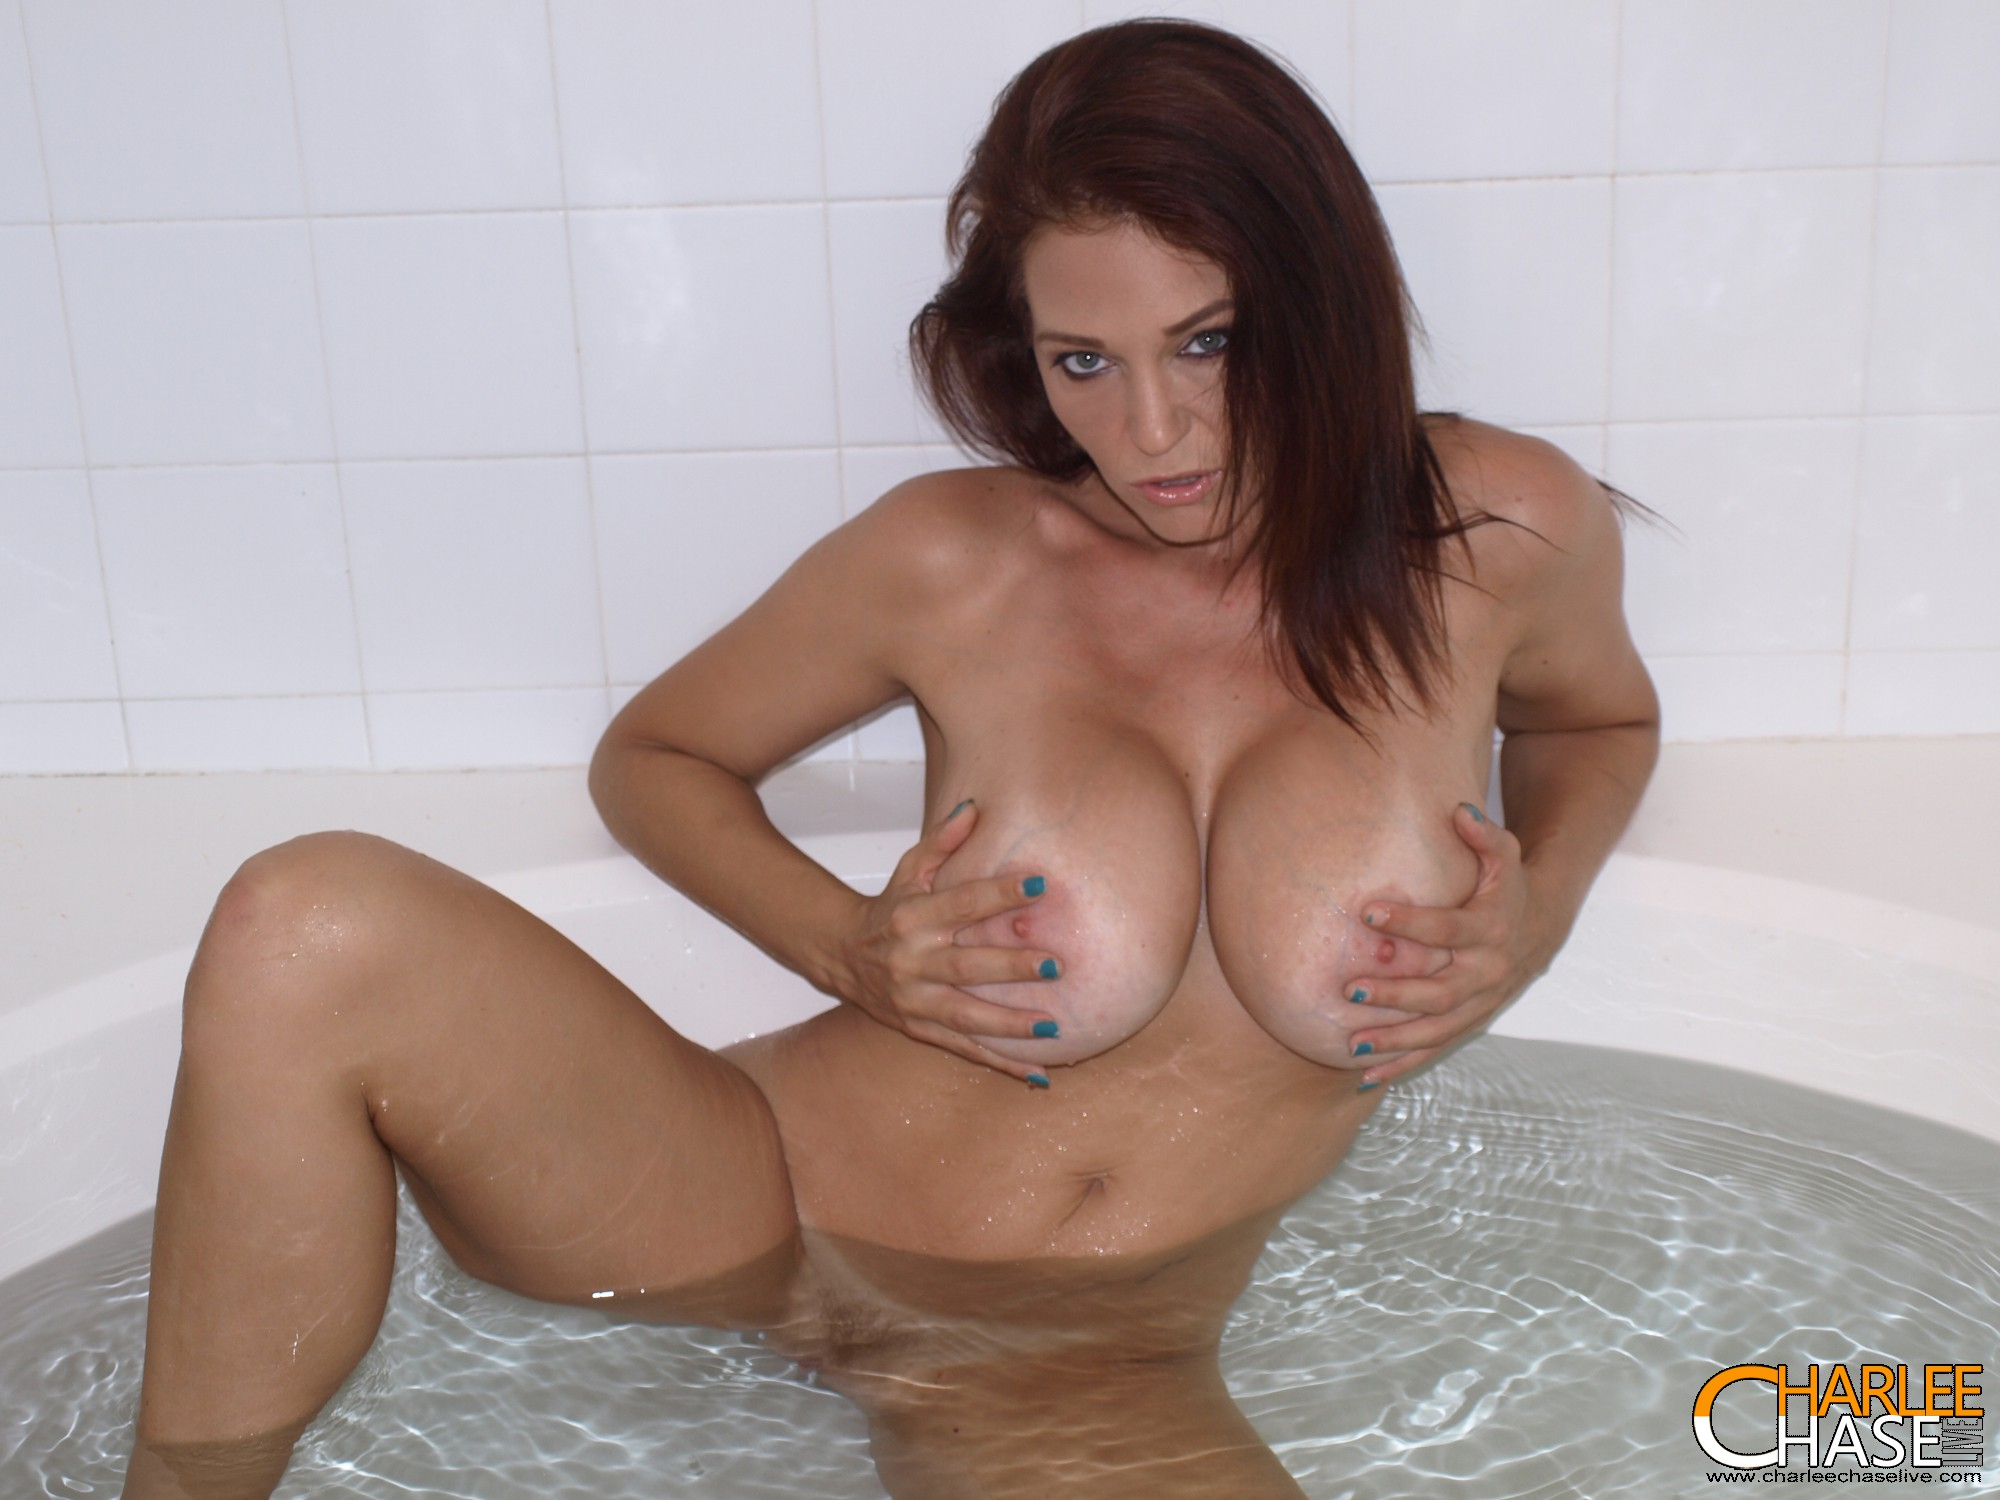 Shall milf busty charlee chase something is